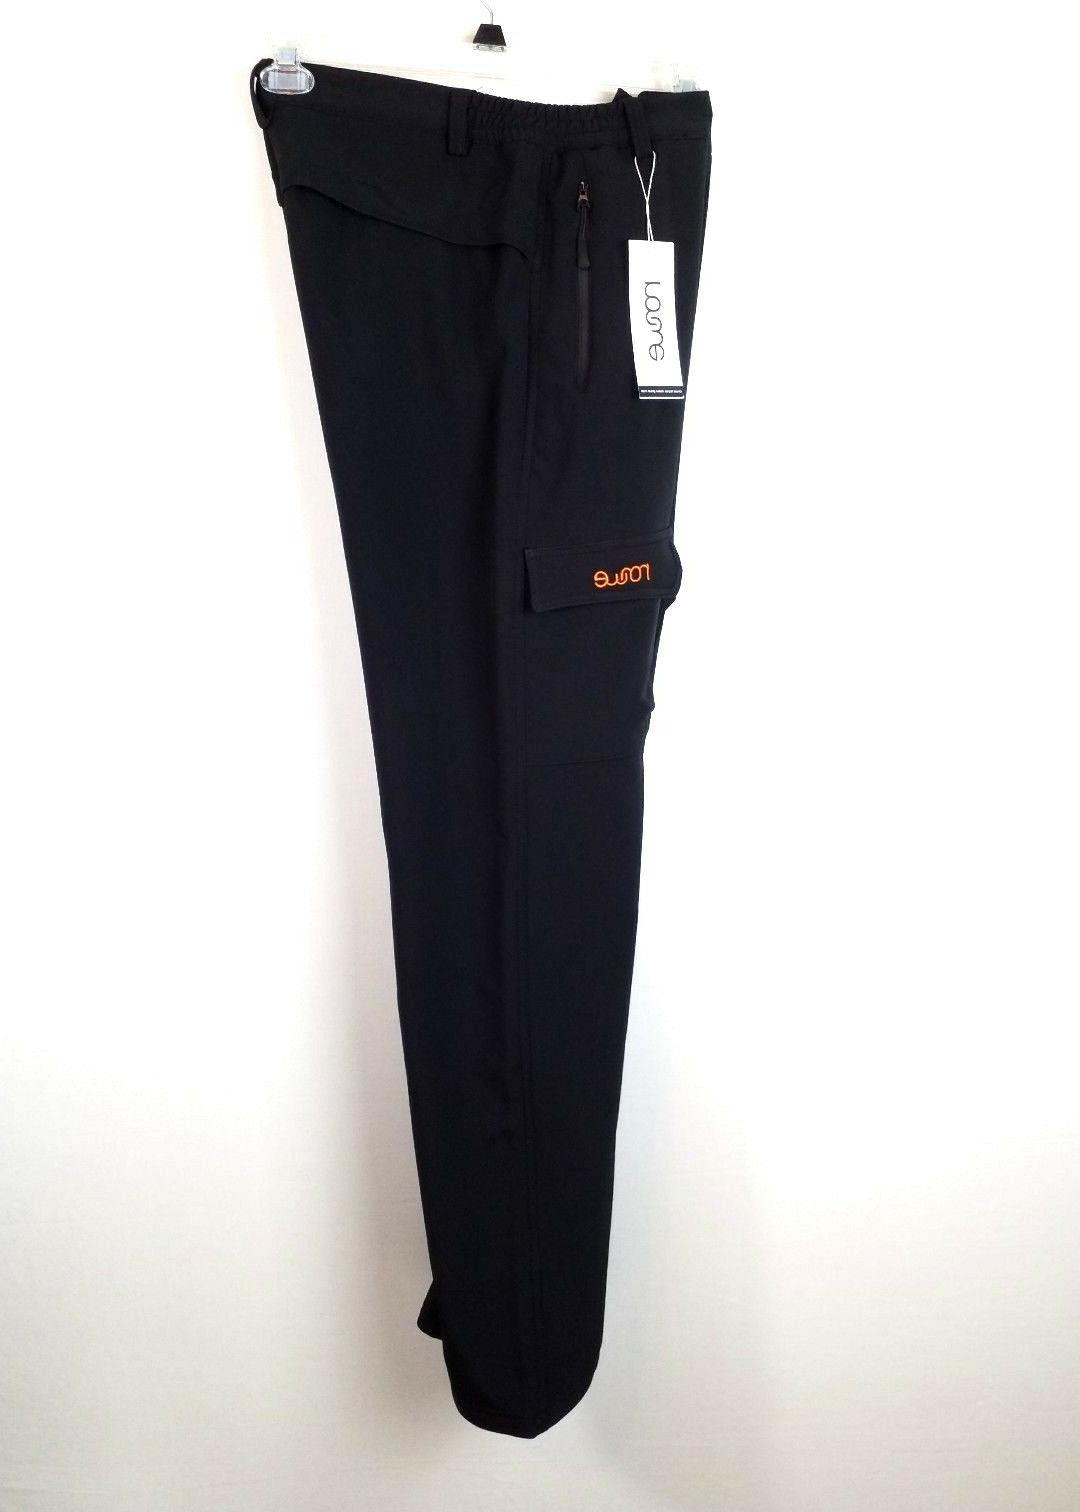 NONWE Men's Outdoor Pants Size NWT